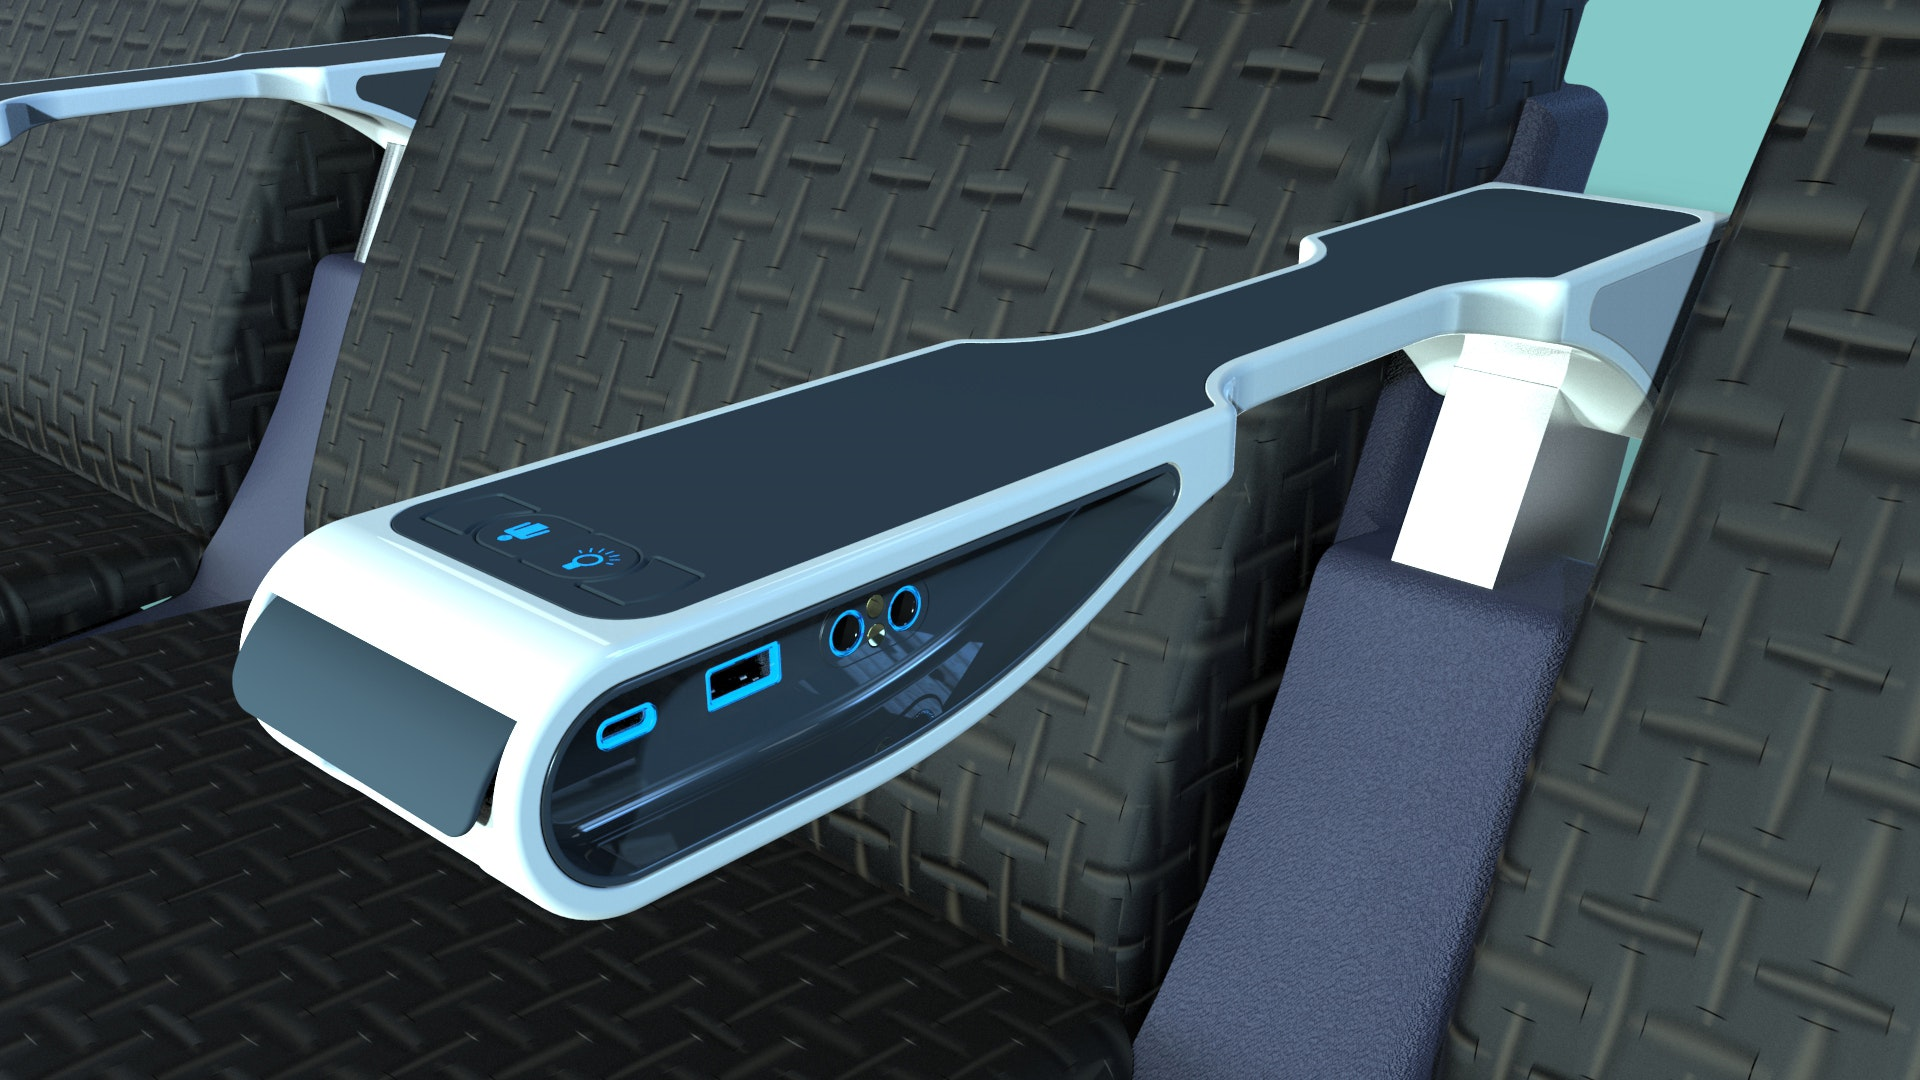 This armrest from IFPL features lighting control and a call button, along with both USB-A and USB-C outlets.